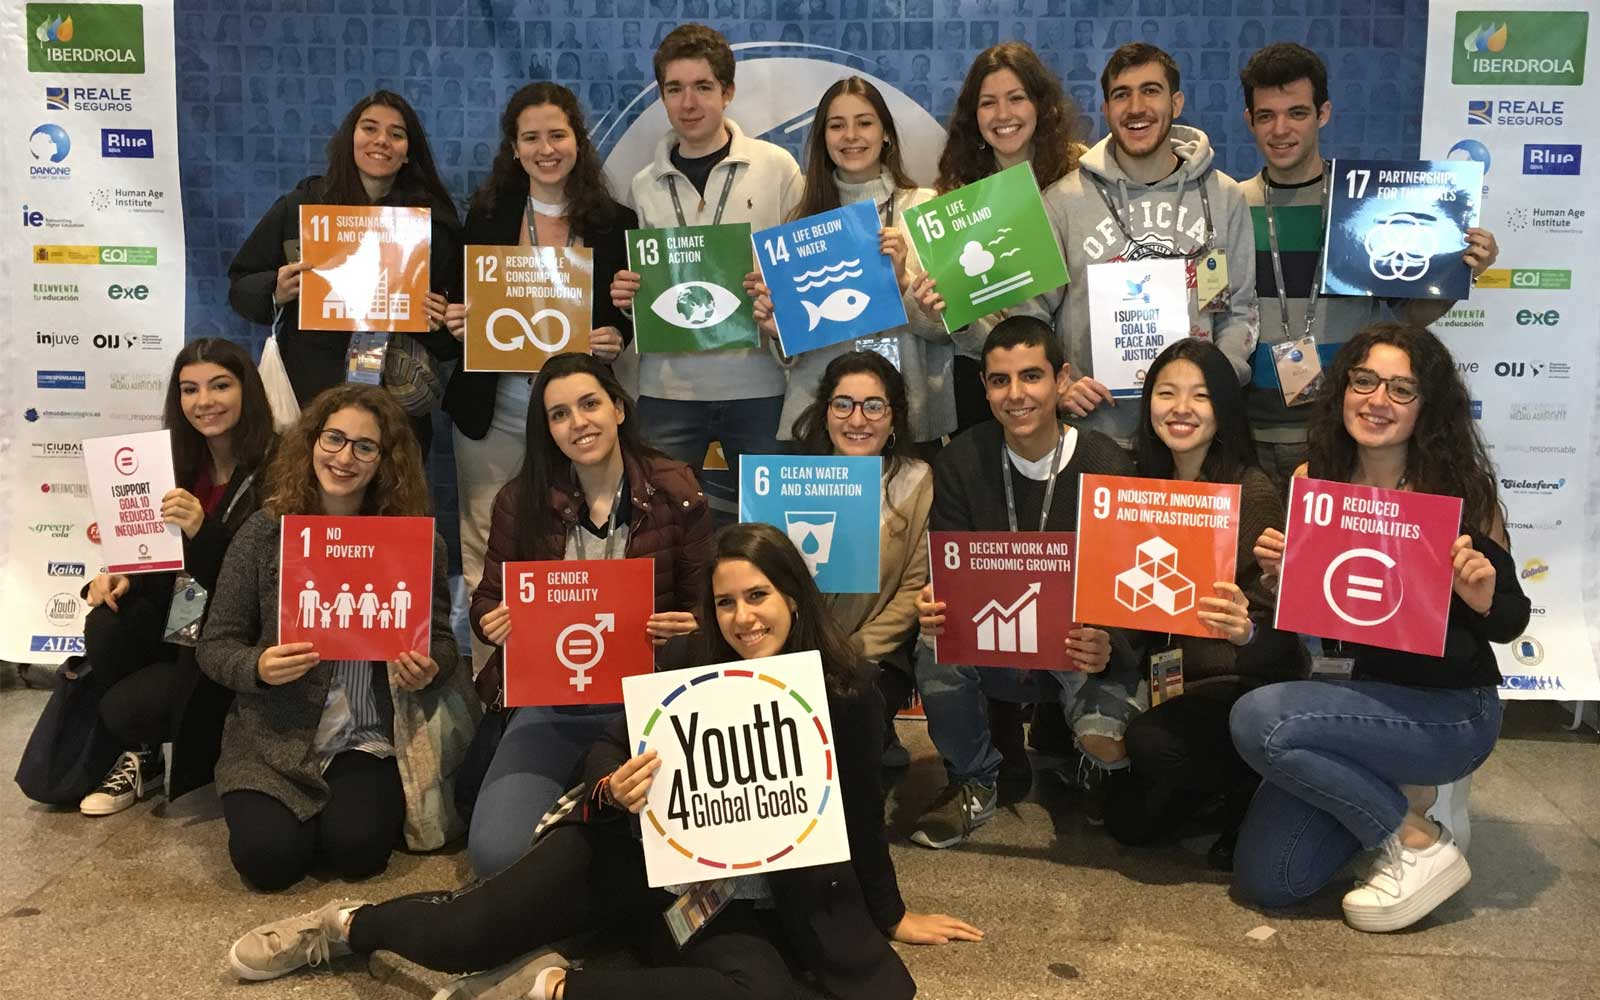 Semana Objetivos Desarrollo Sostenible ODS YouthSpeak Forum 4 Goals